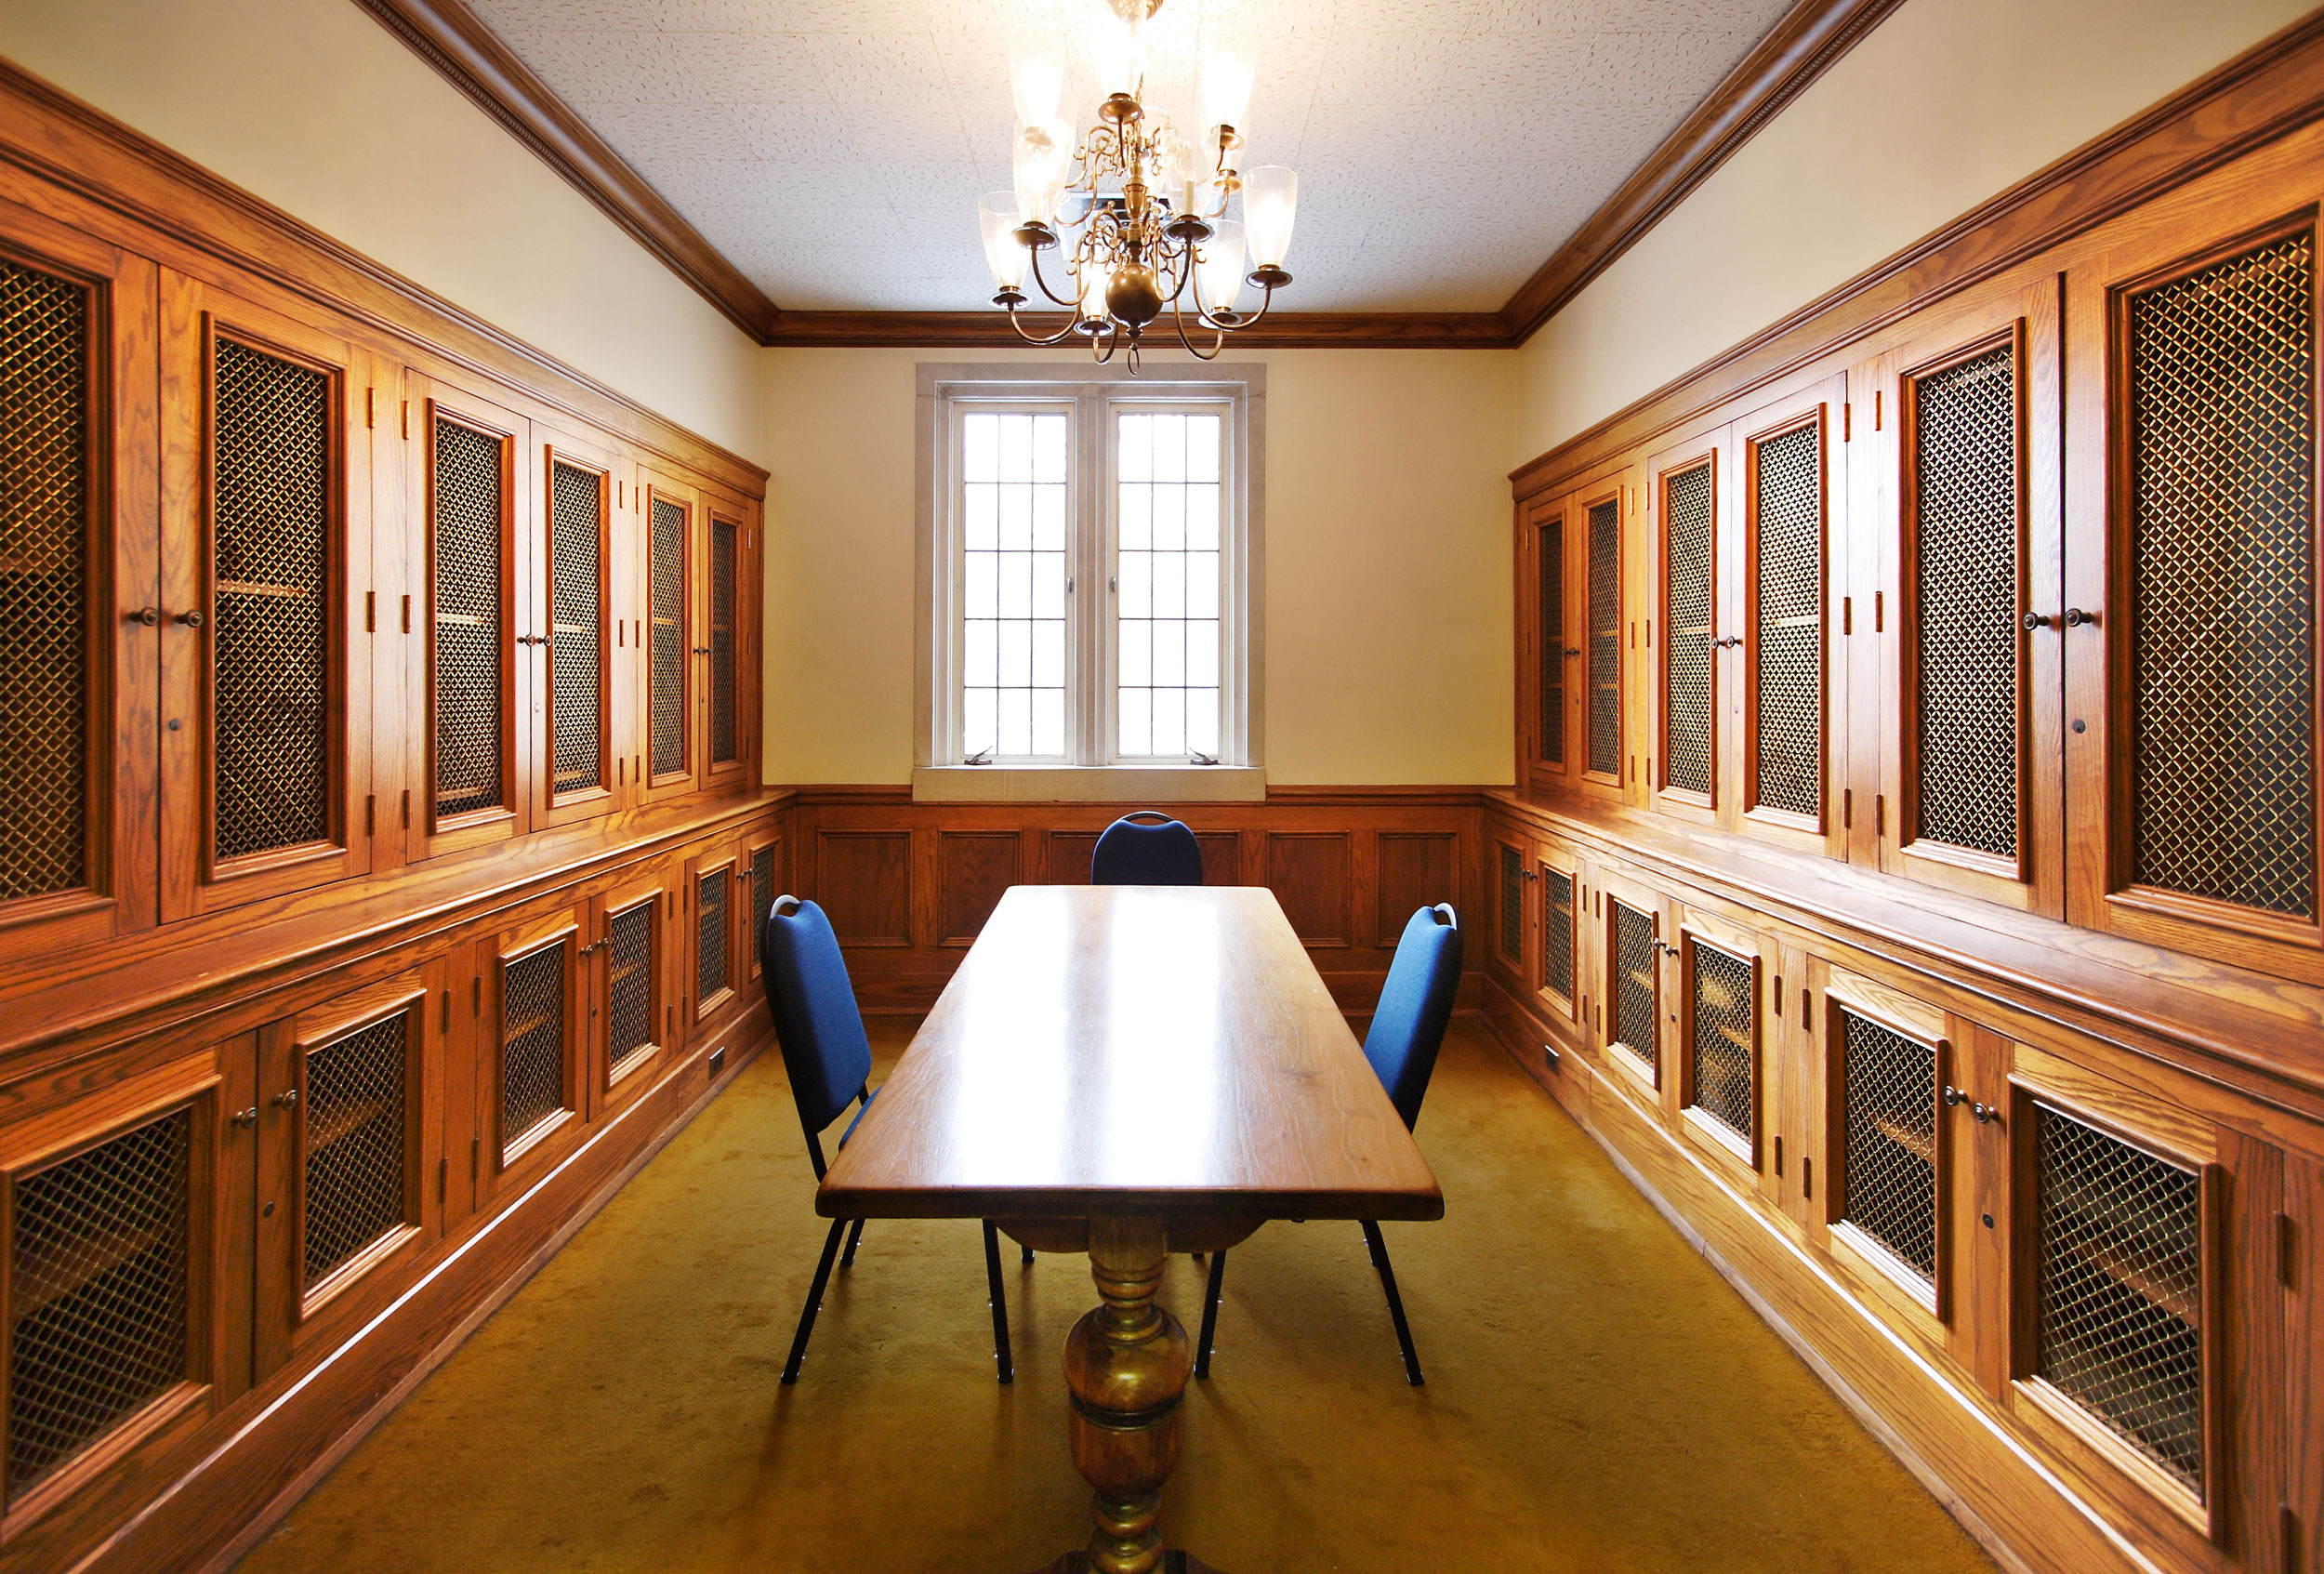 small library with windows, chandelier, conference table and chairs